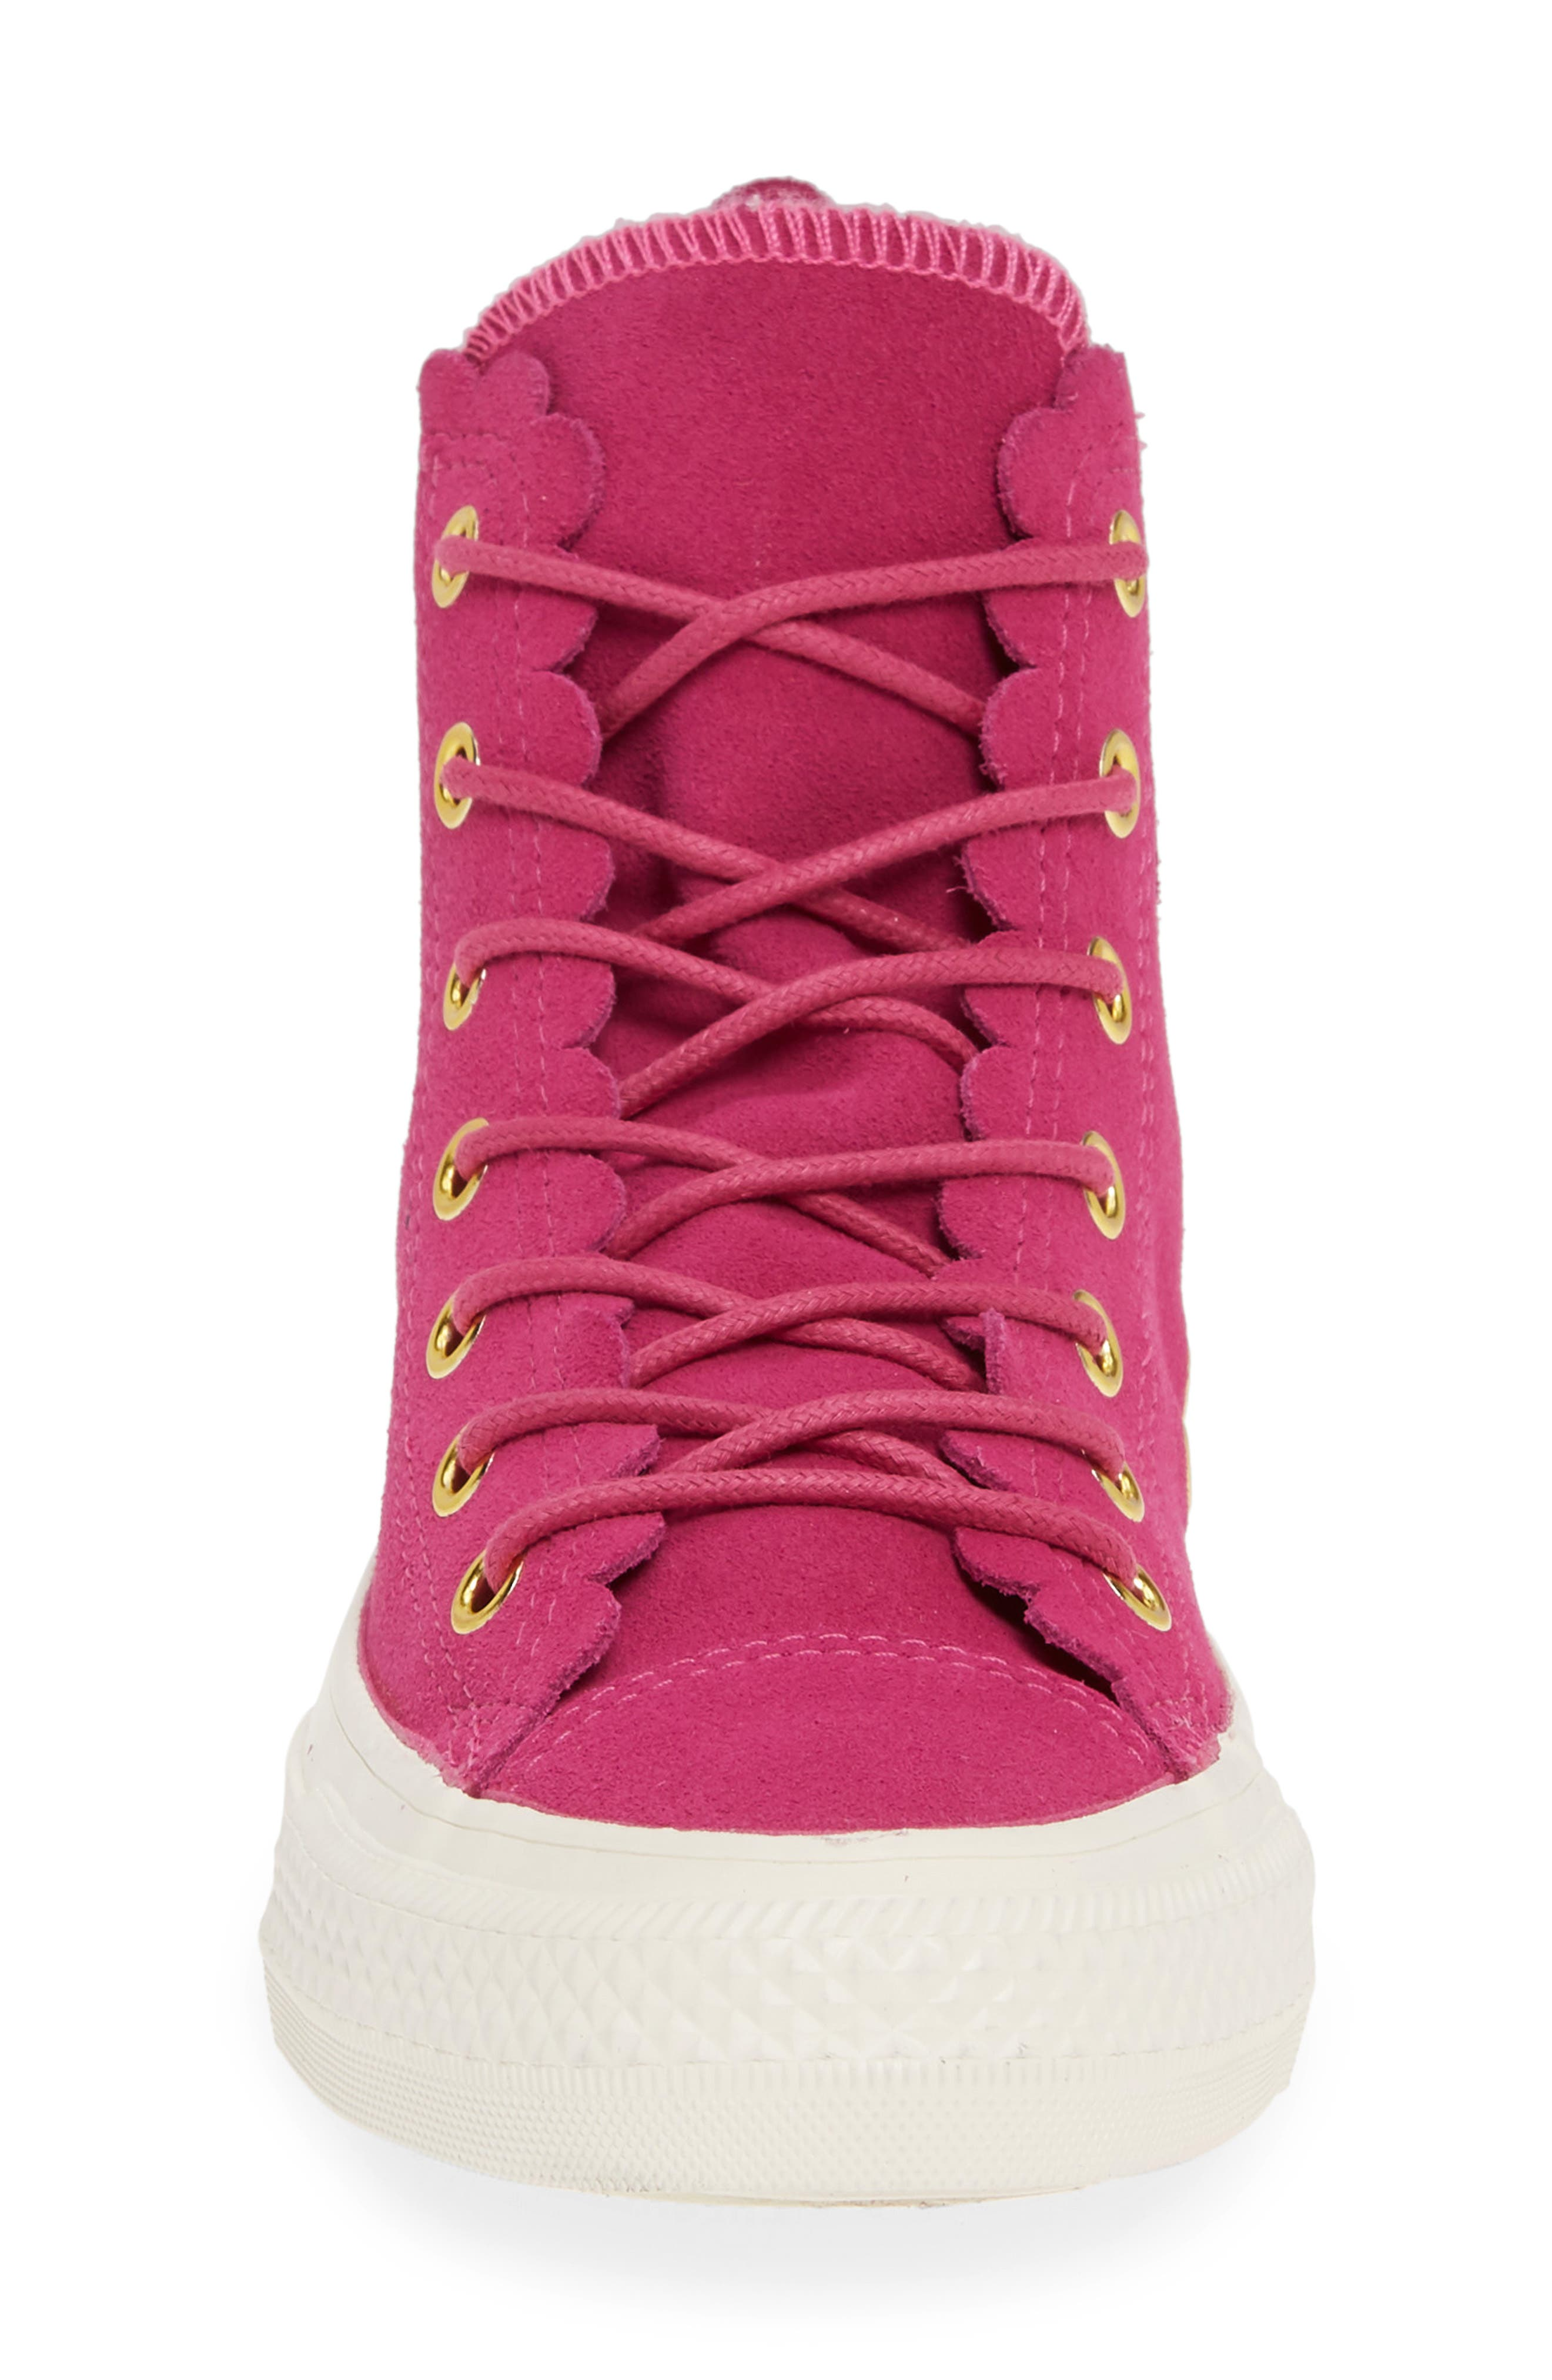 CONVERSE, Chuck Taylor<sup>®</sup> All Star<sup>®</sup> Scallop High Top Suede Sneaker, Alternate thumbnail 4, color, ACTIVE FUCHSIA/ GOLD/ EGRET